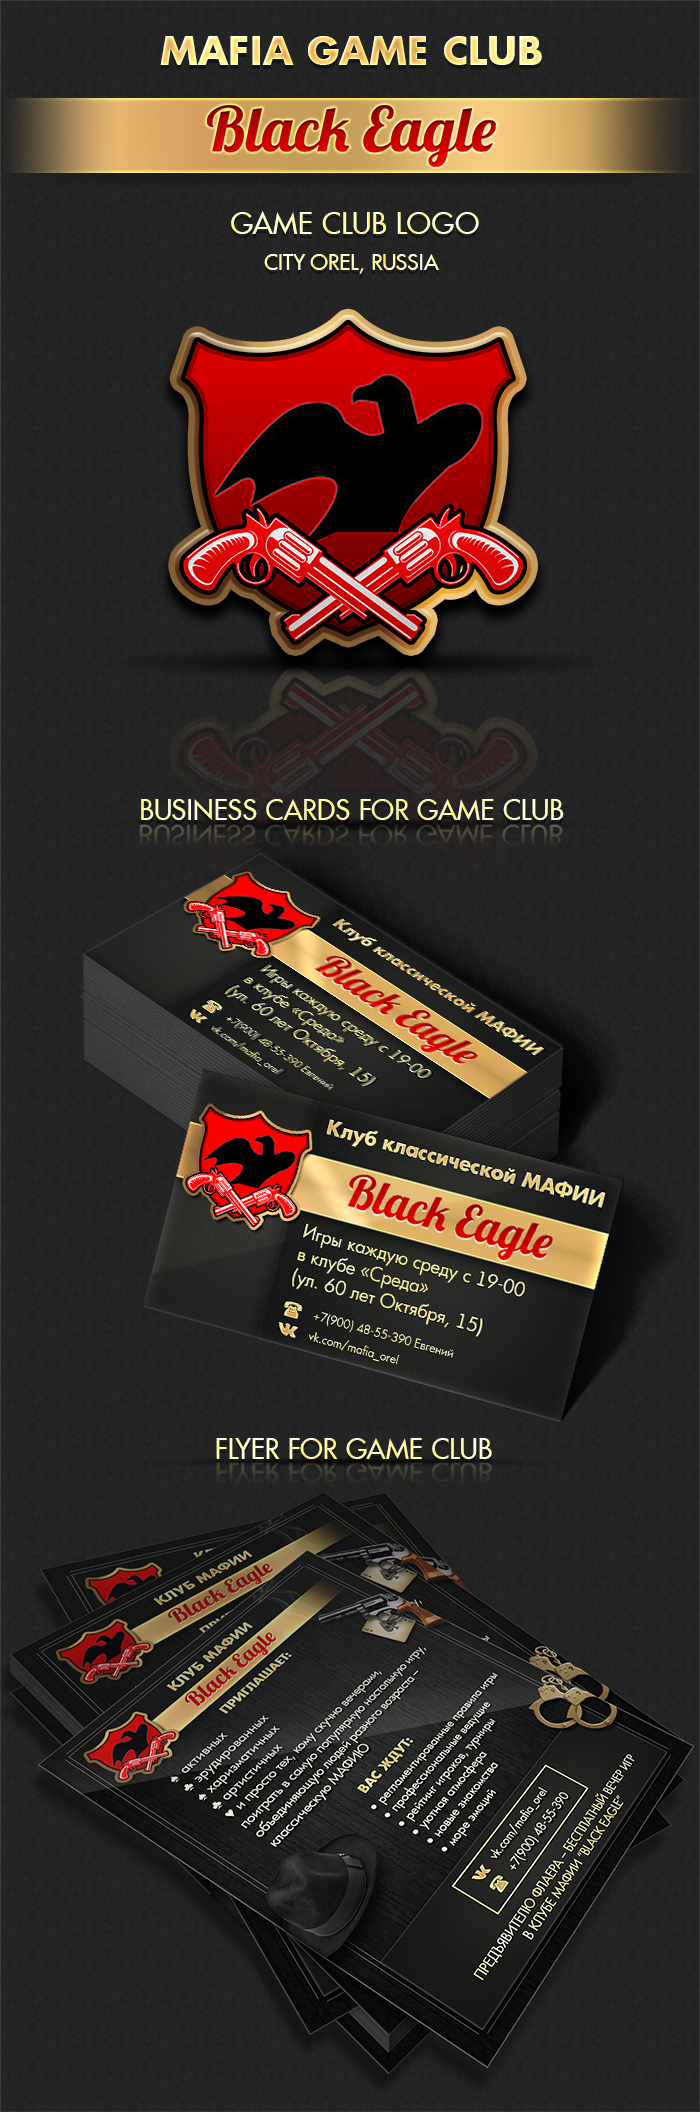 Corporate Identity for Mafia game club on Behance